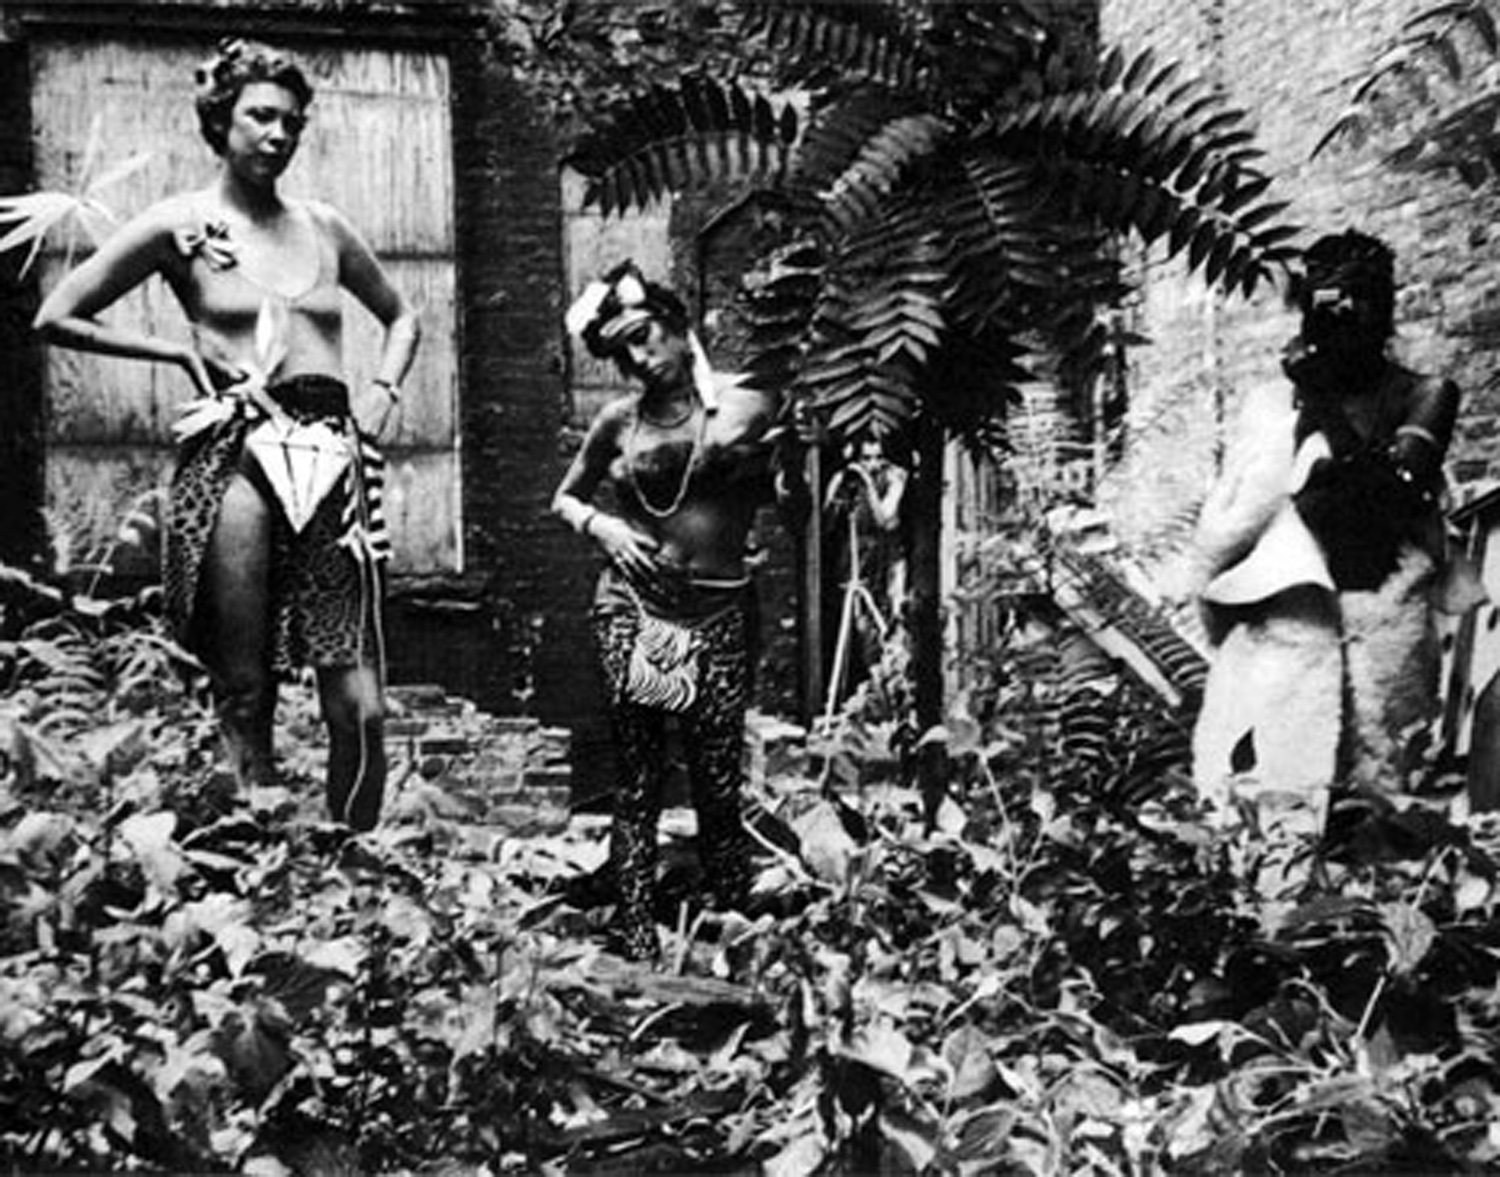 Cave girls in No Rio's backyard. From left, Becky Howland, Judy Ross, Kiki Smith and Marnie Greenholz. Photo by Teri Slotkin